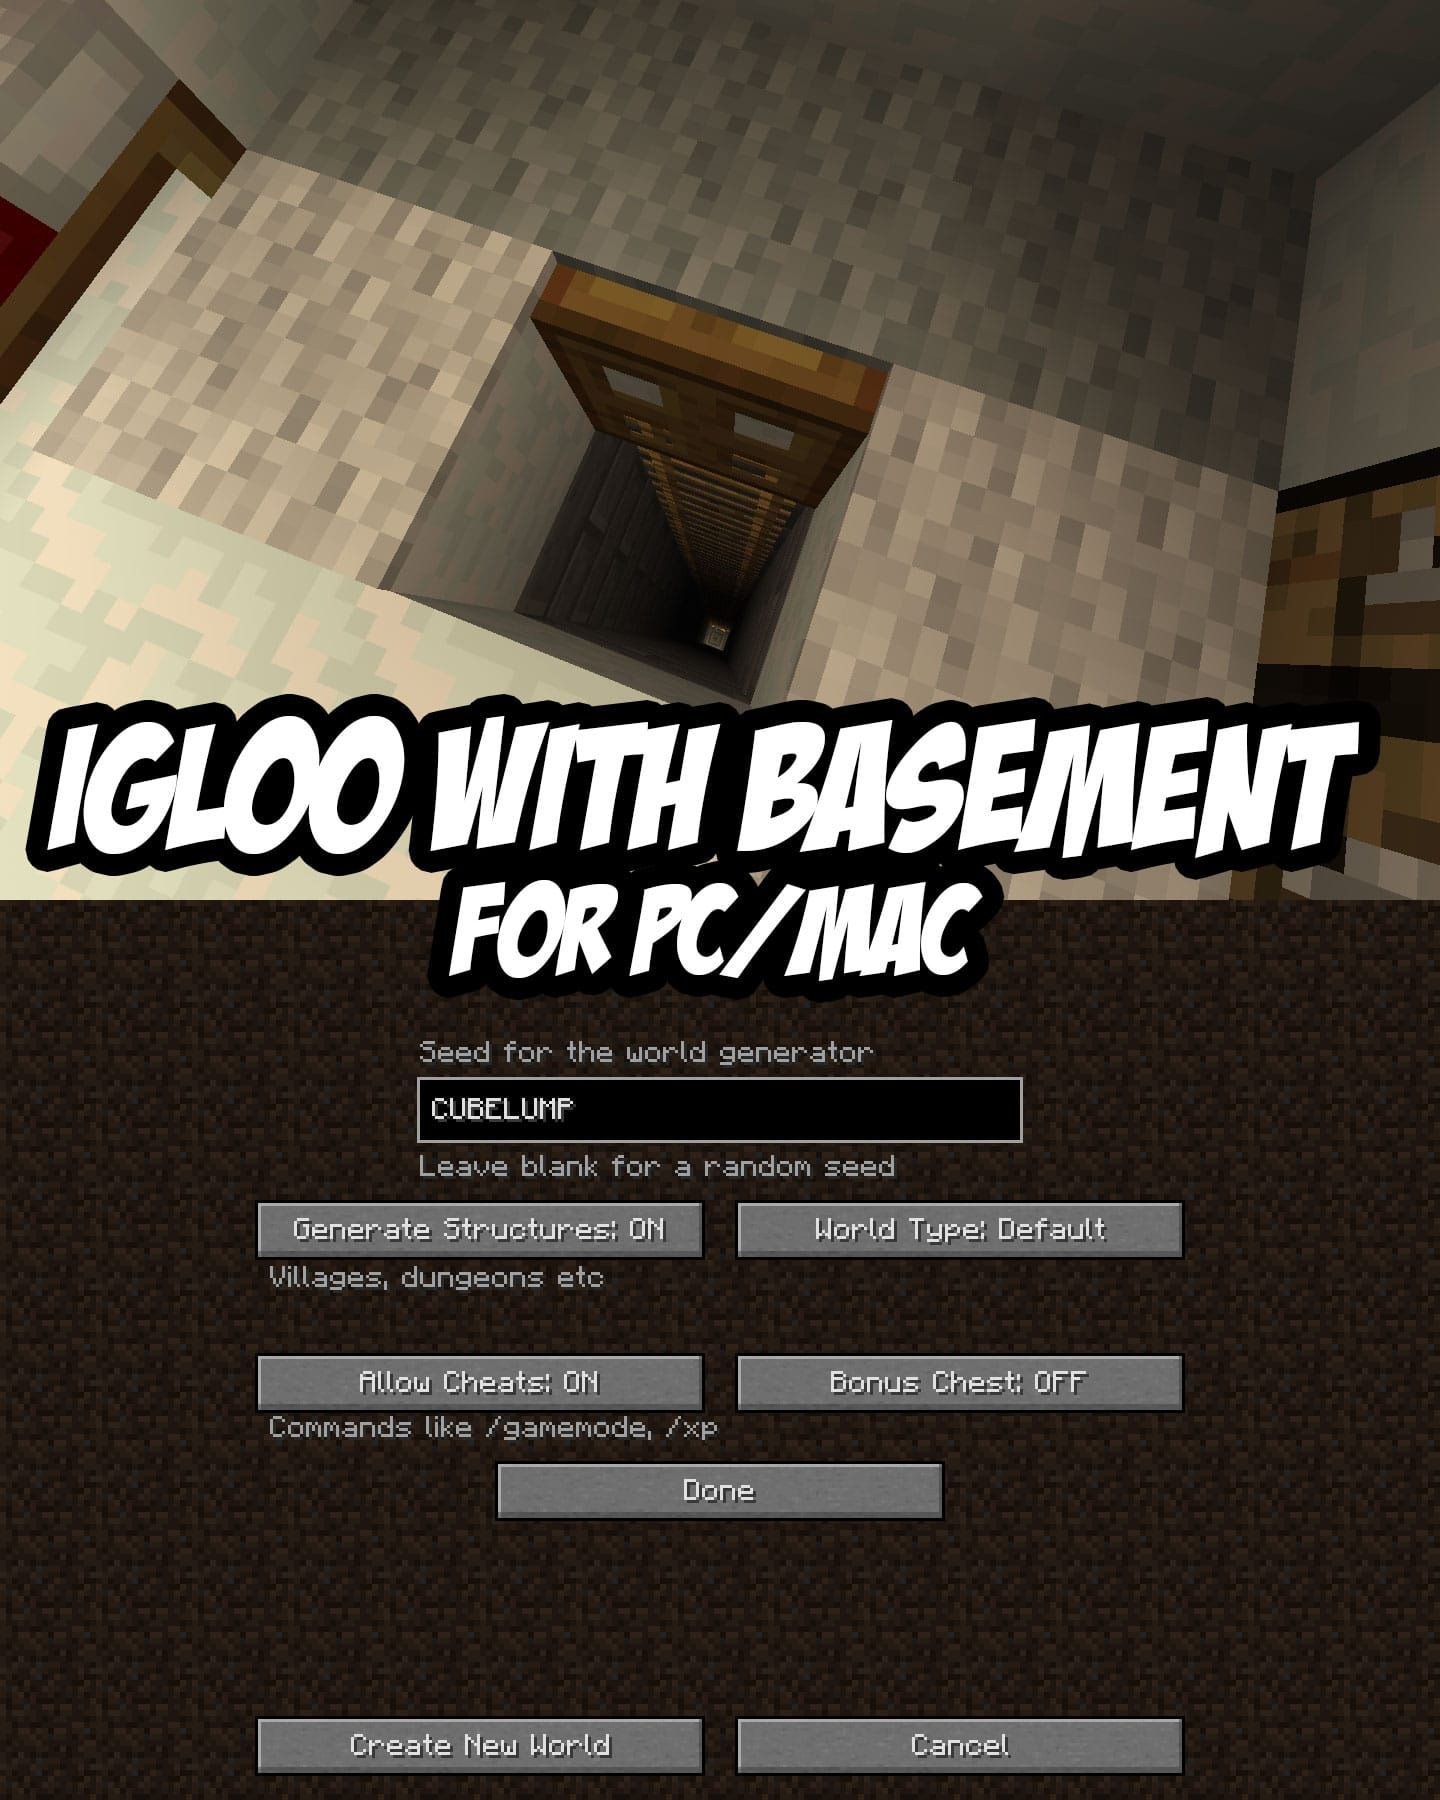 Igloo With Basement Seed For Pc Mac Cubelump Minecraft Seeds Pc